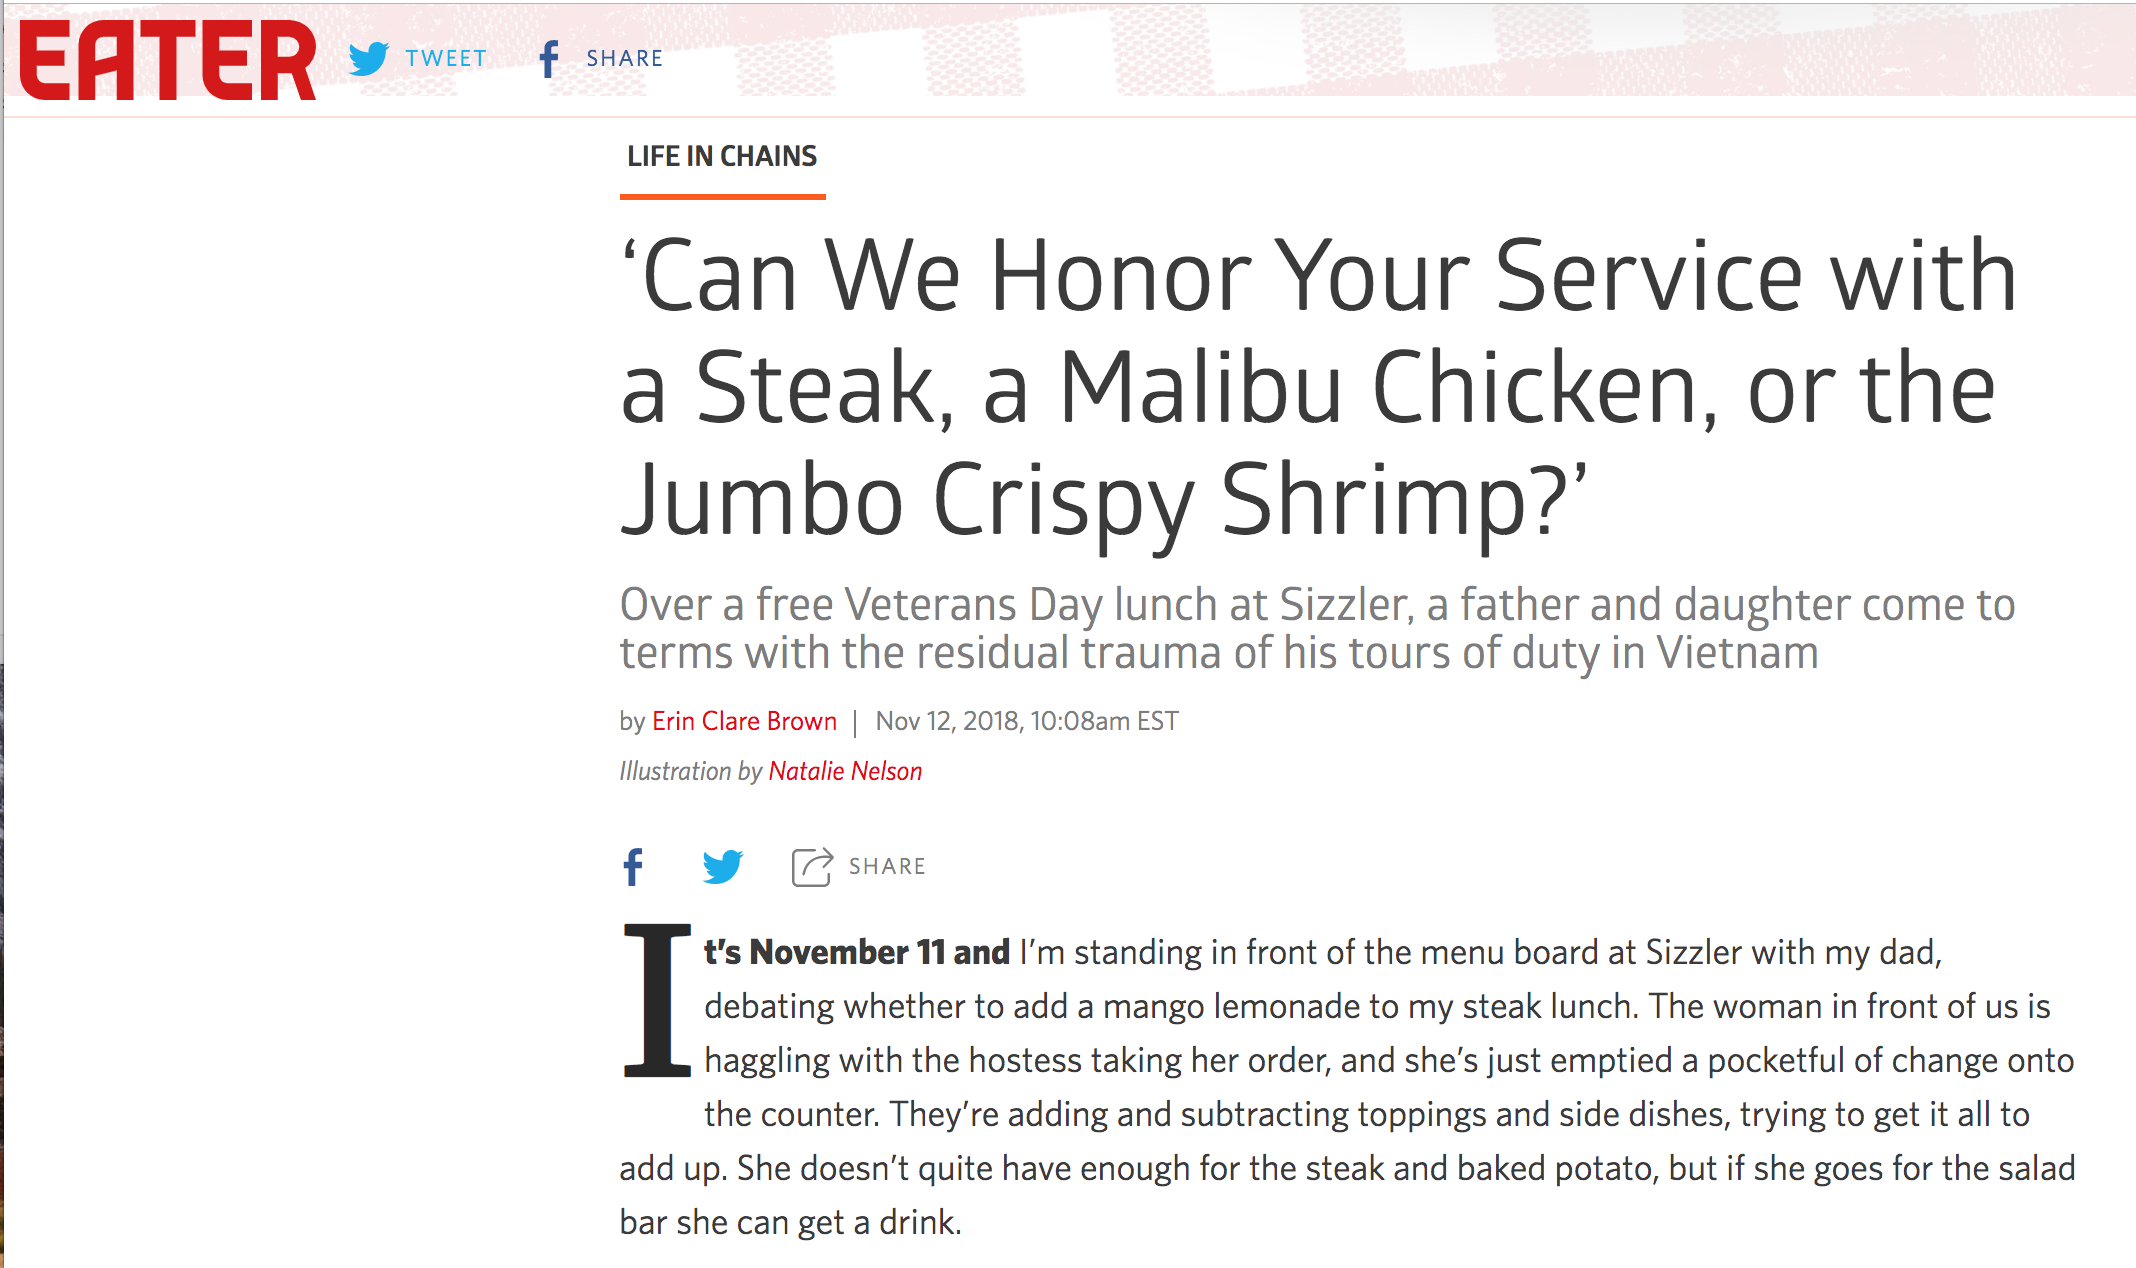 Eater - What do we owe our vets if not a free steak lunch?